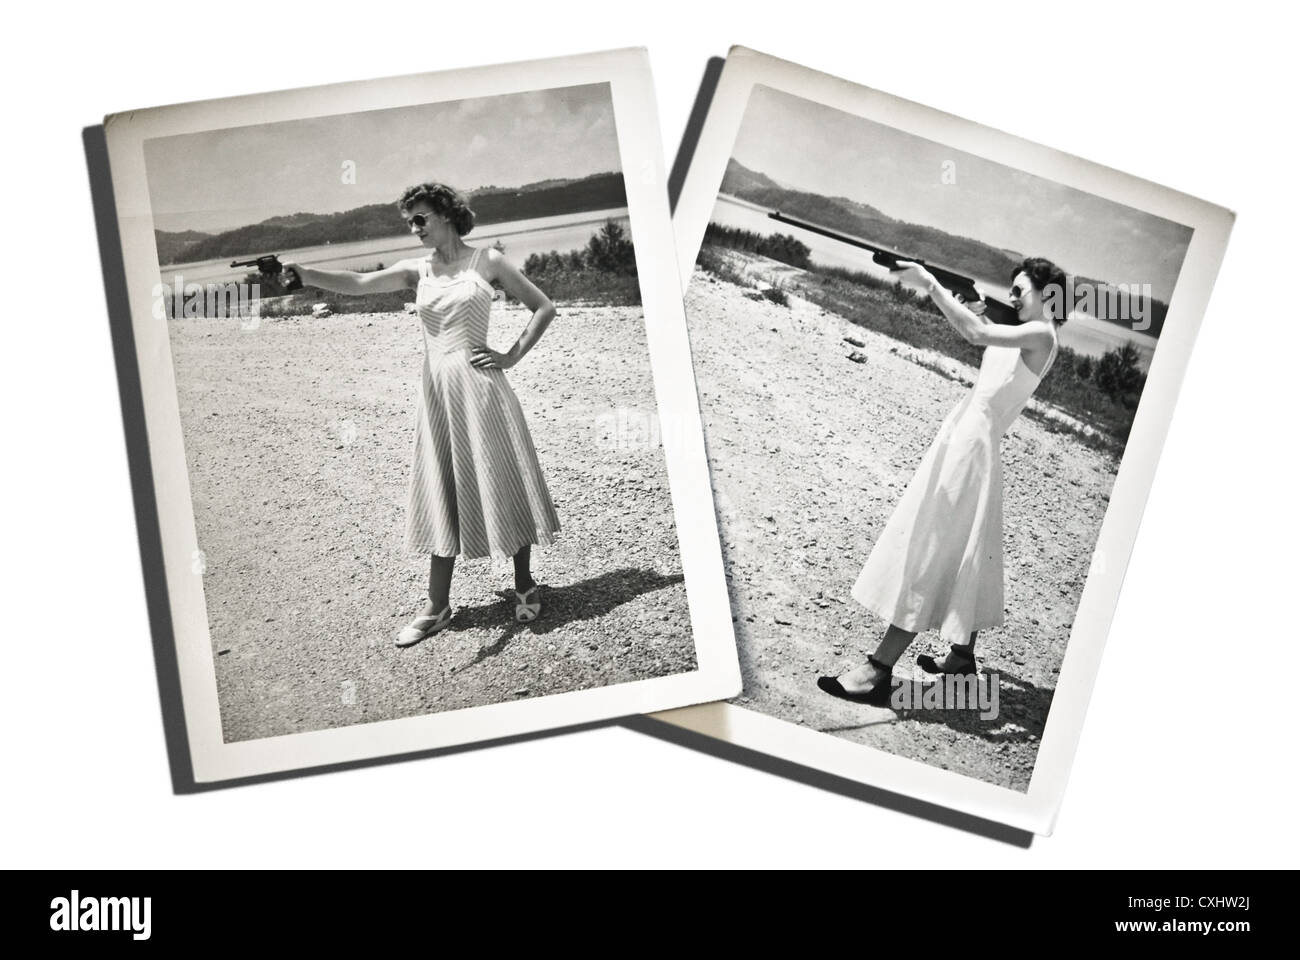 Two real, vintage photos of young women posing, aiming guns. These are from the 1940's, they have a timeless - Stock Image